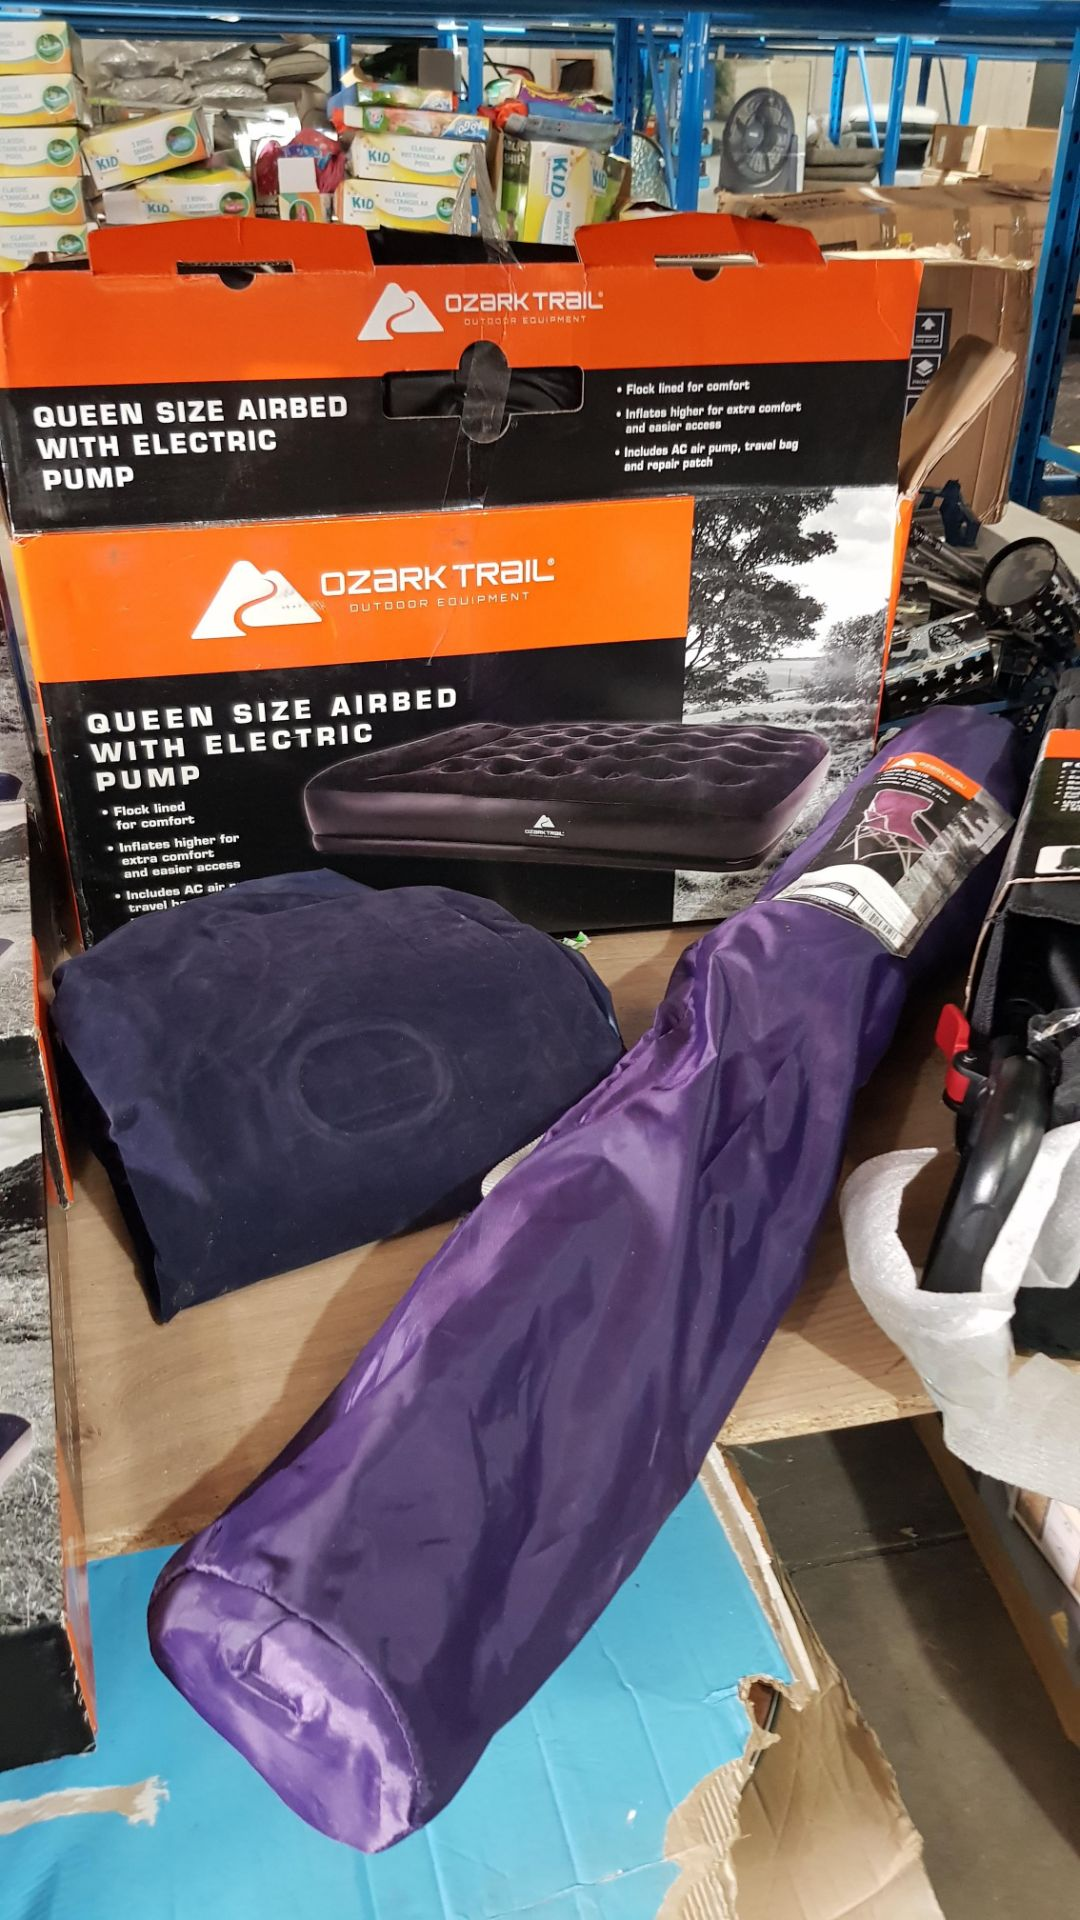 (3G) 7x Ozark Trail Items. 1x Queen Size Airbed. 2x Double Airbed. 2x Single Airbed (1x No Box). 1 - Image 8 of 10